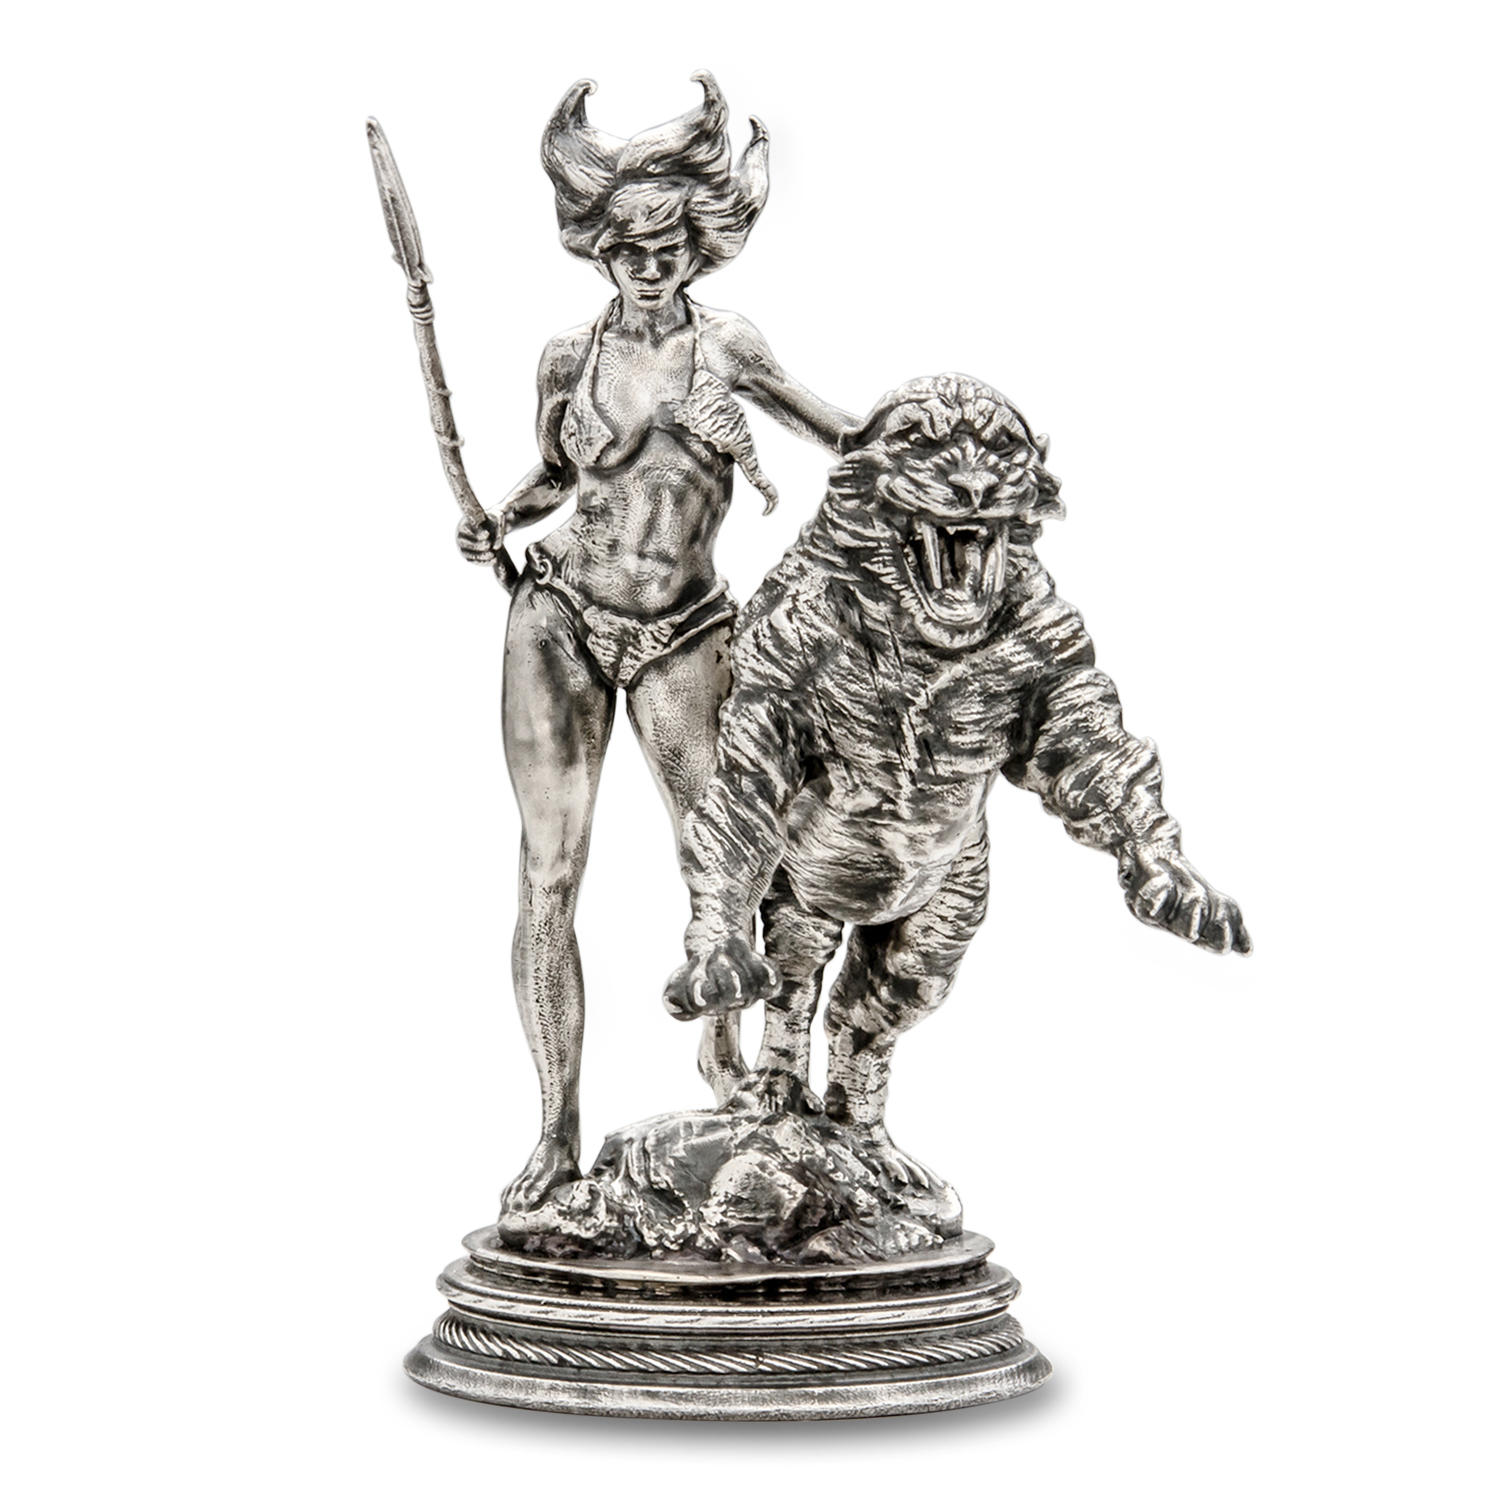 6 oz Silver Antique Statue - Frank Frazetta (The Huntress)